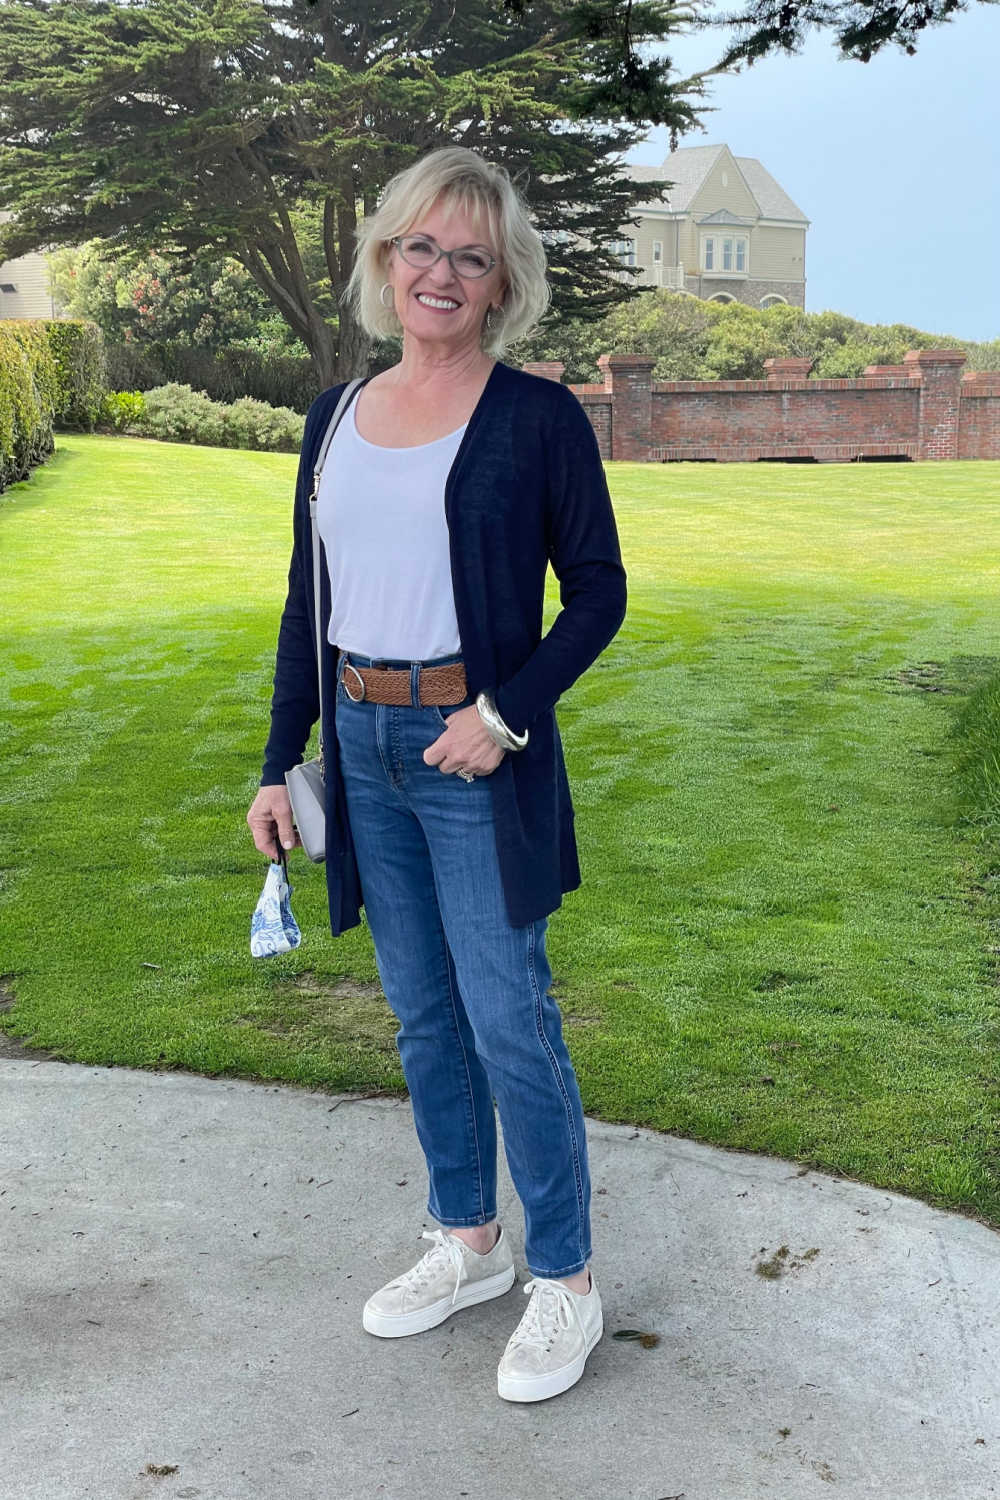 woman standing in jeans and blue sweater in front of lawn and hotel at half moon bay